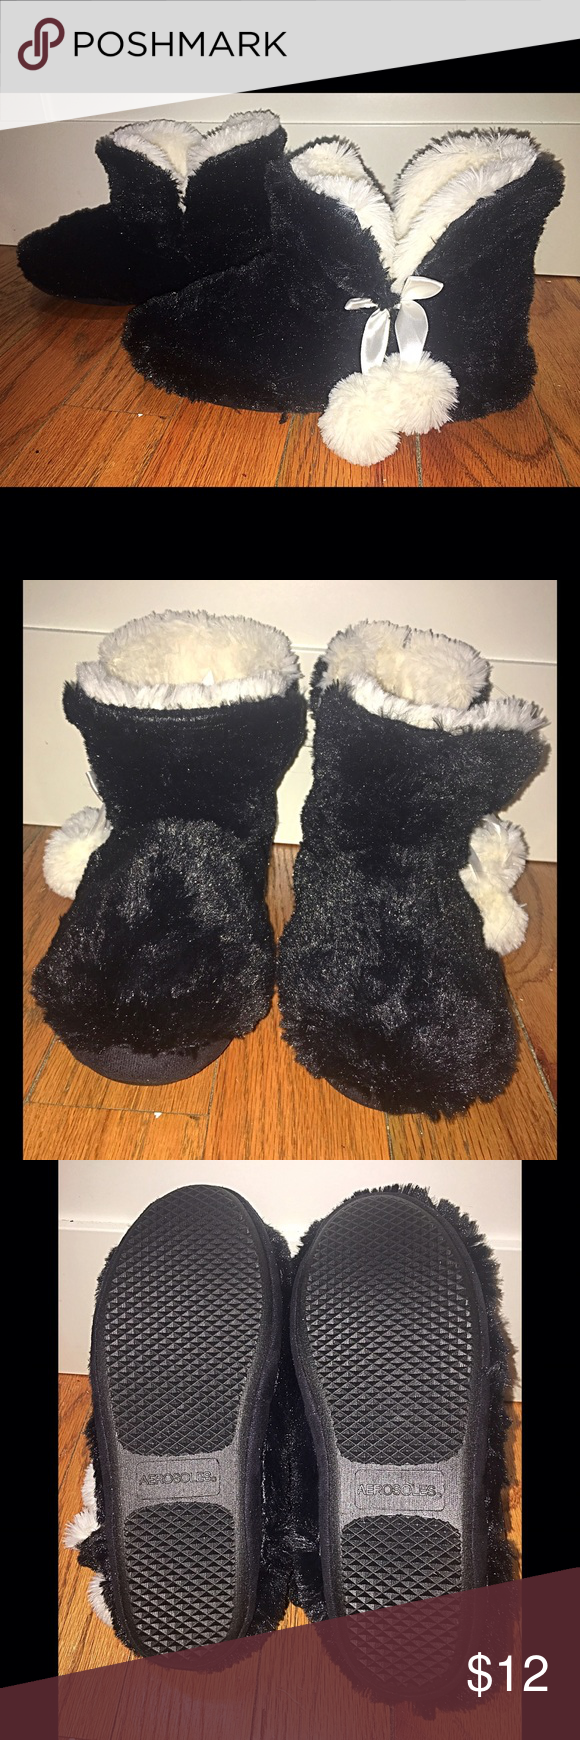 Booties Slippers! Black booties slippers. Very soft, comfortable and warm slippers. Got these as a gift. Never worn just tried on. So they're basically new just without the tag. Zoom in for details :) AEROSOLES Shoes Slippers